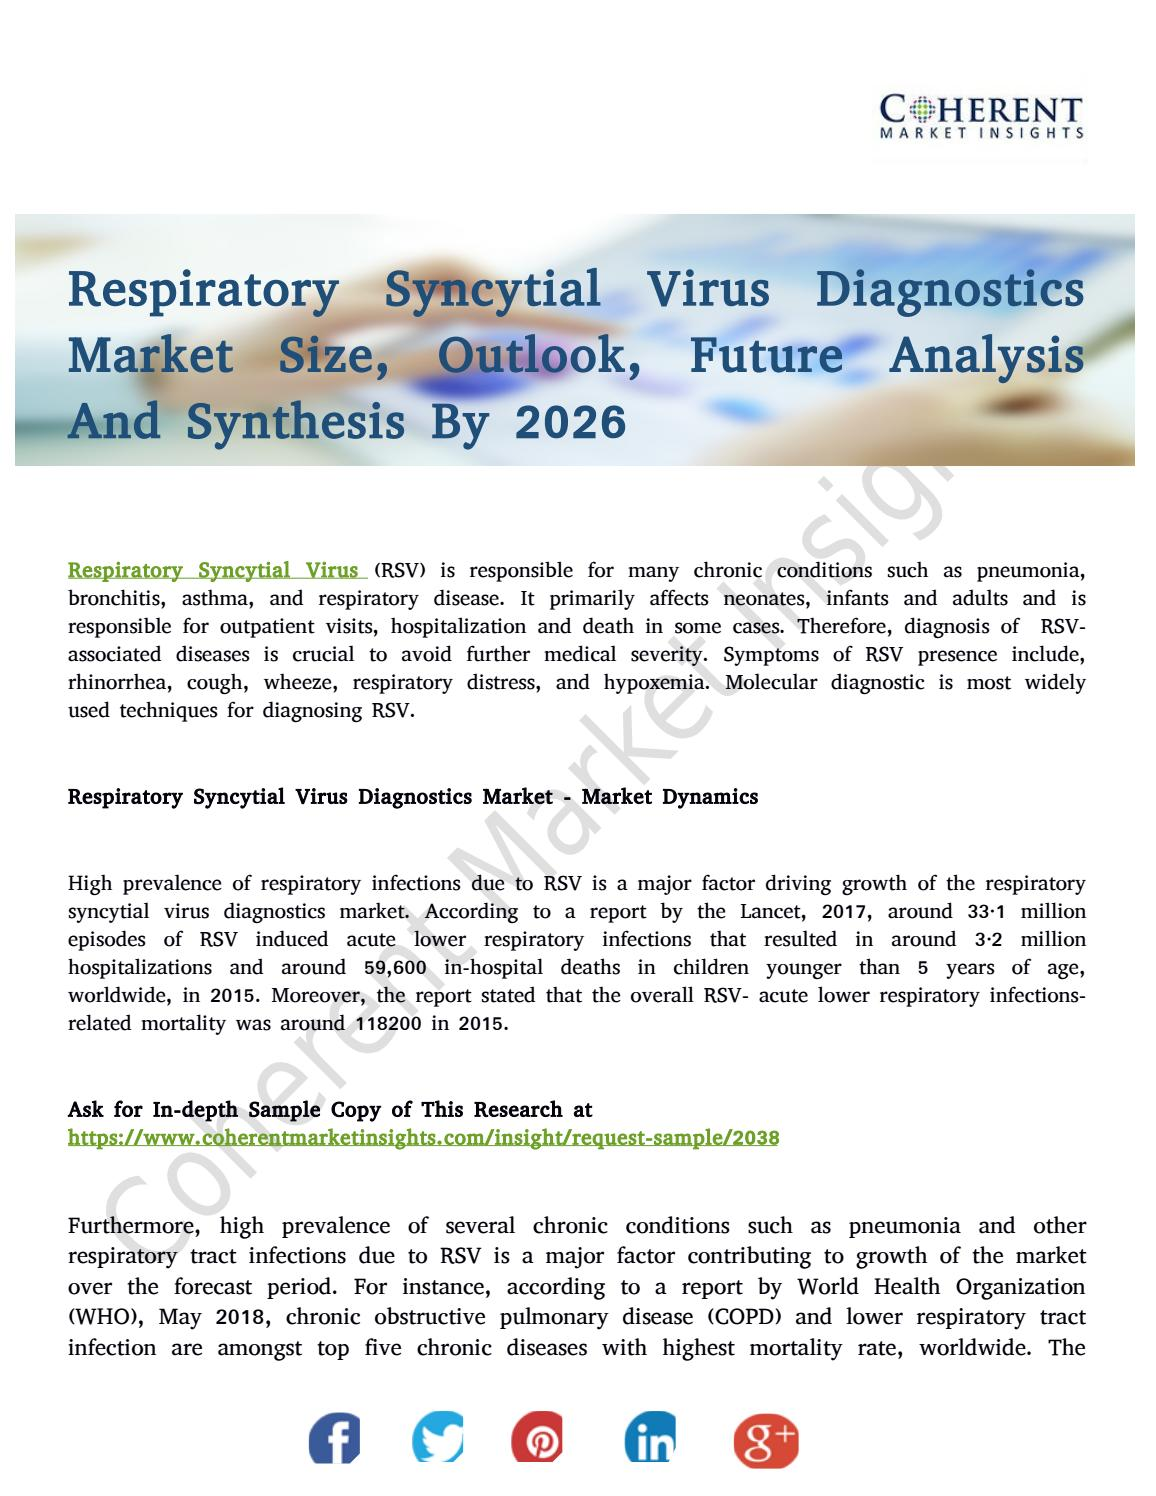 Respiratory Syncytial Virus Diagnostics Market: Mention Of